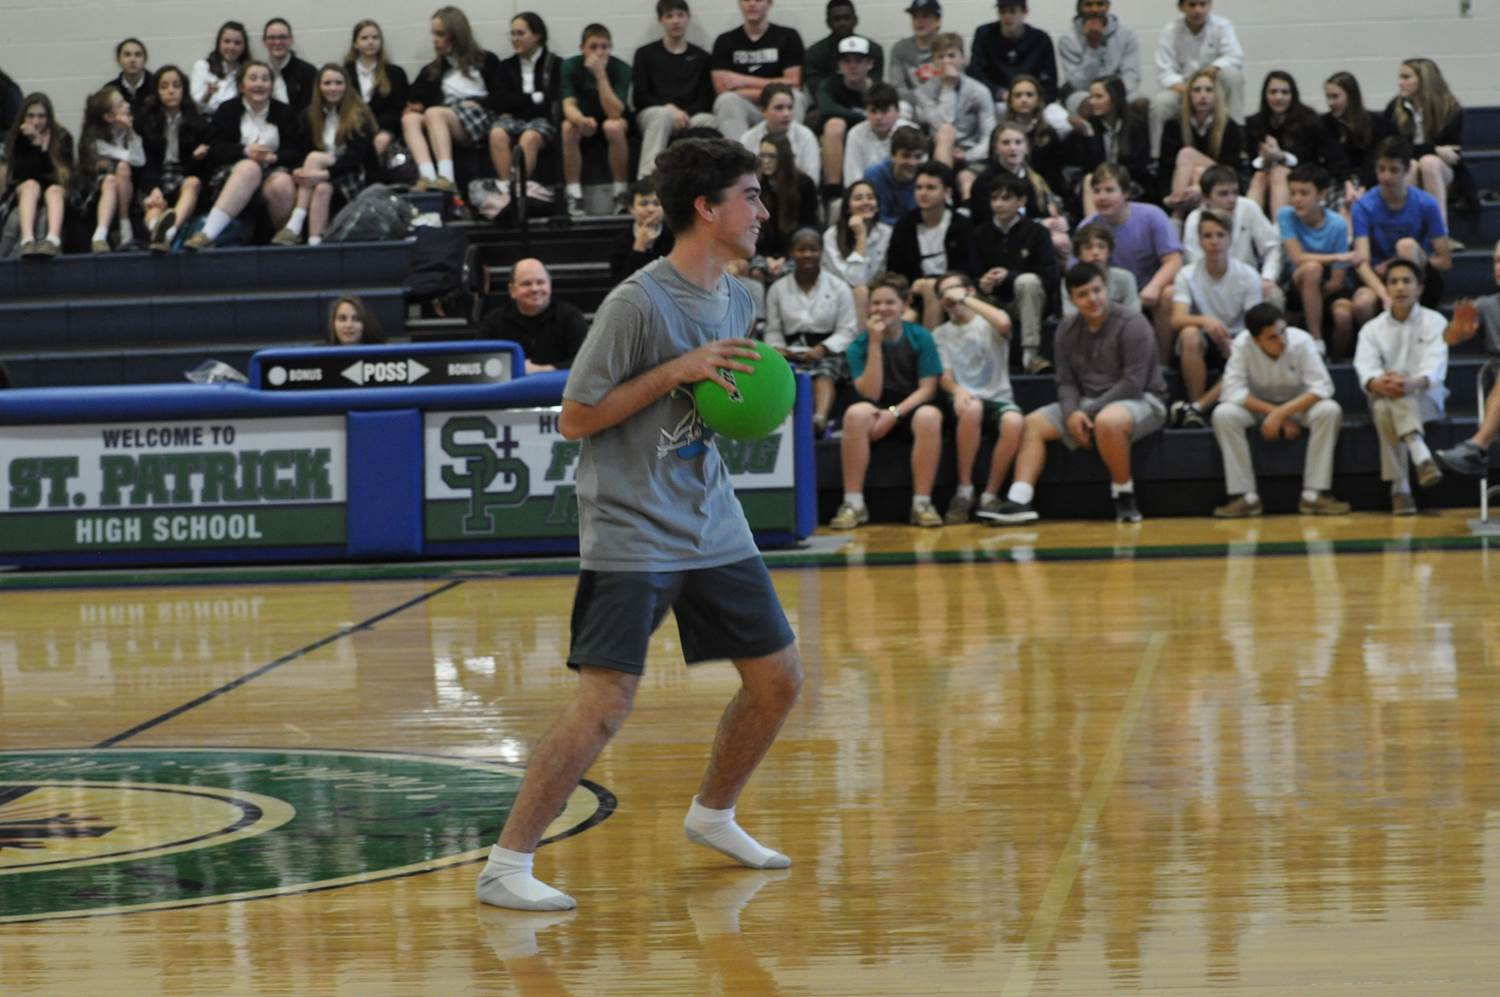 Teachers and students face off in afternoon dodgeball tournament